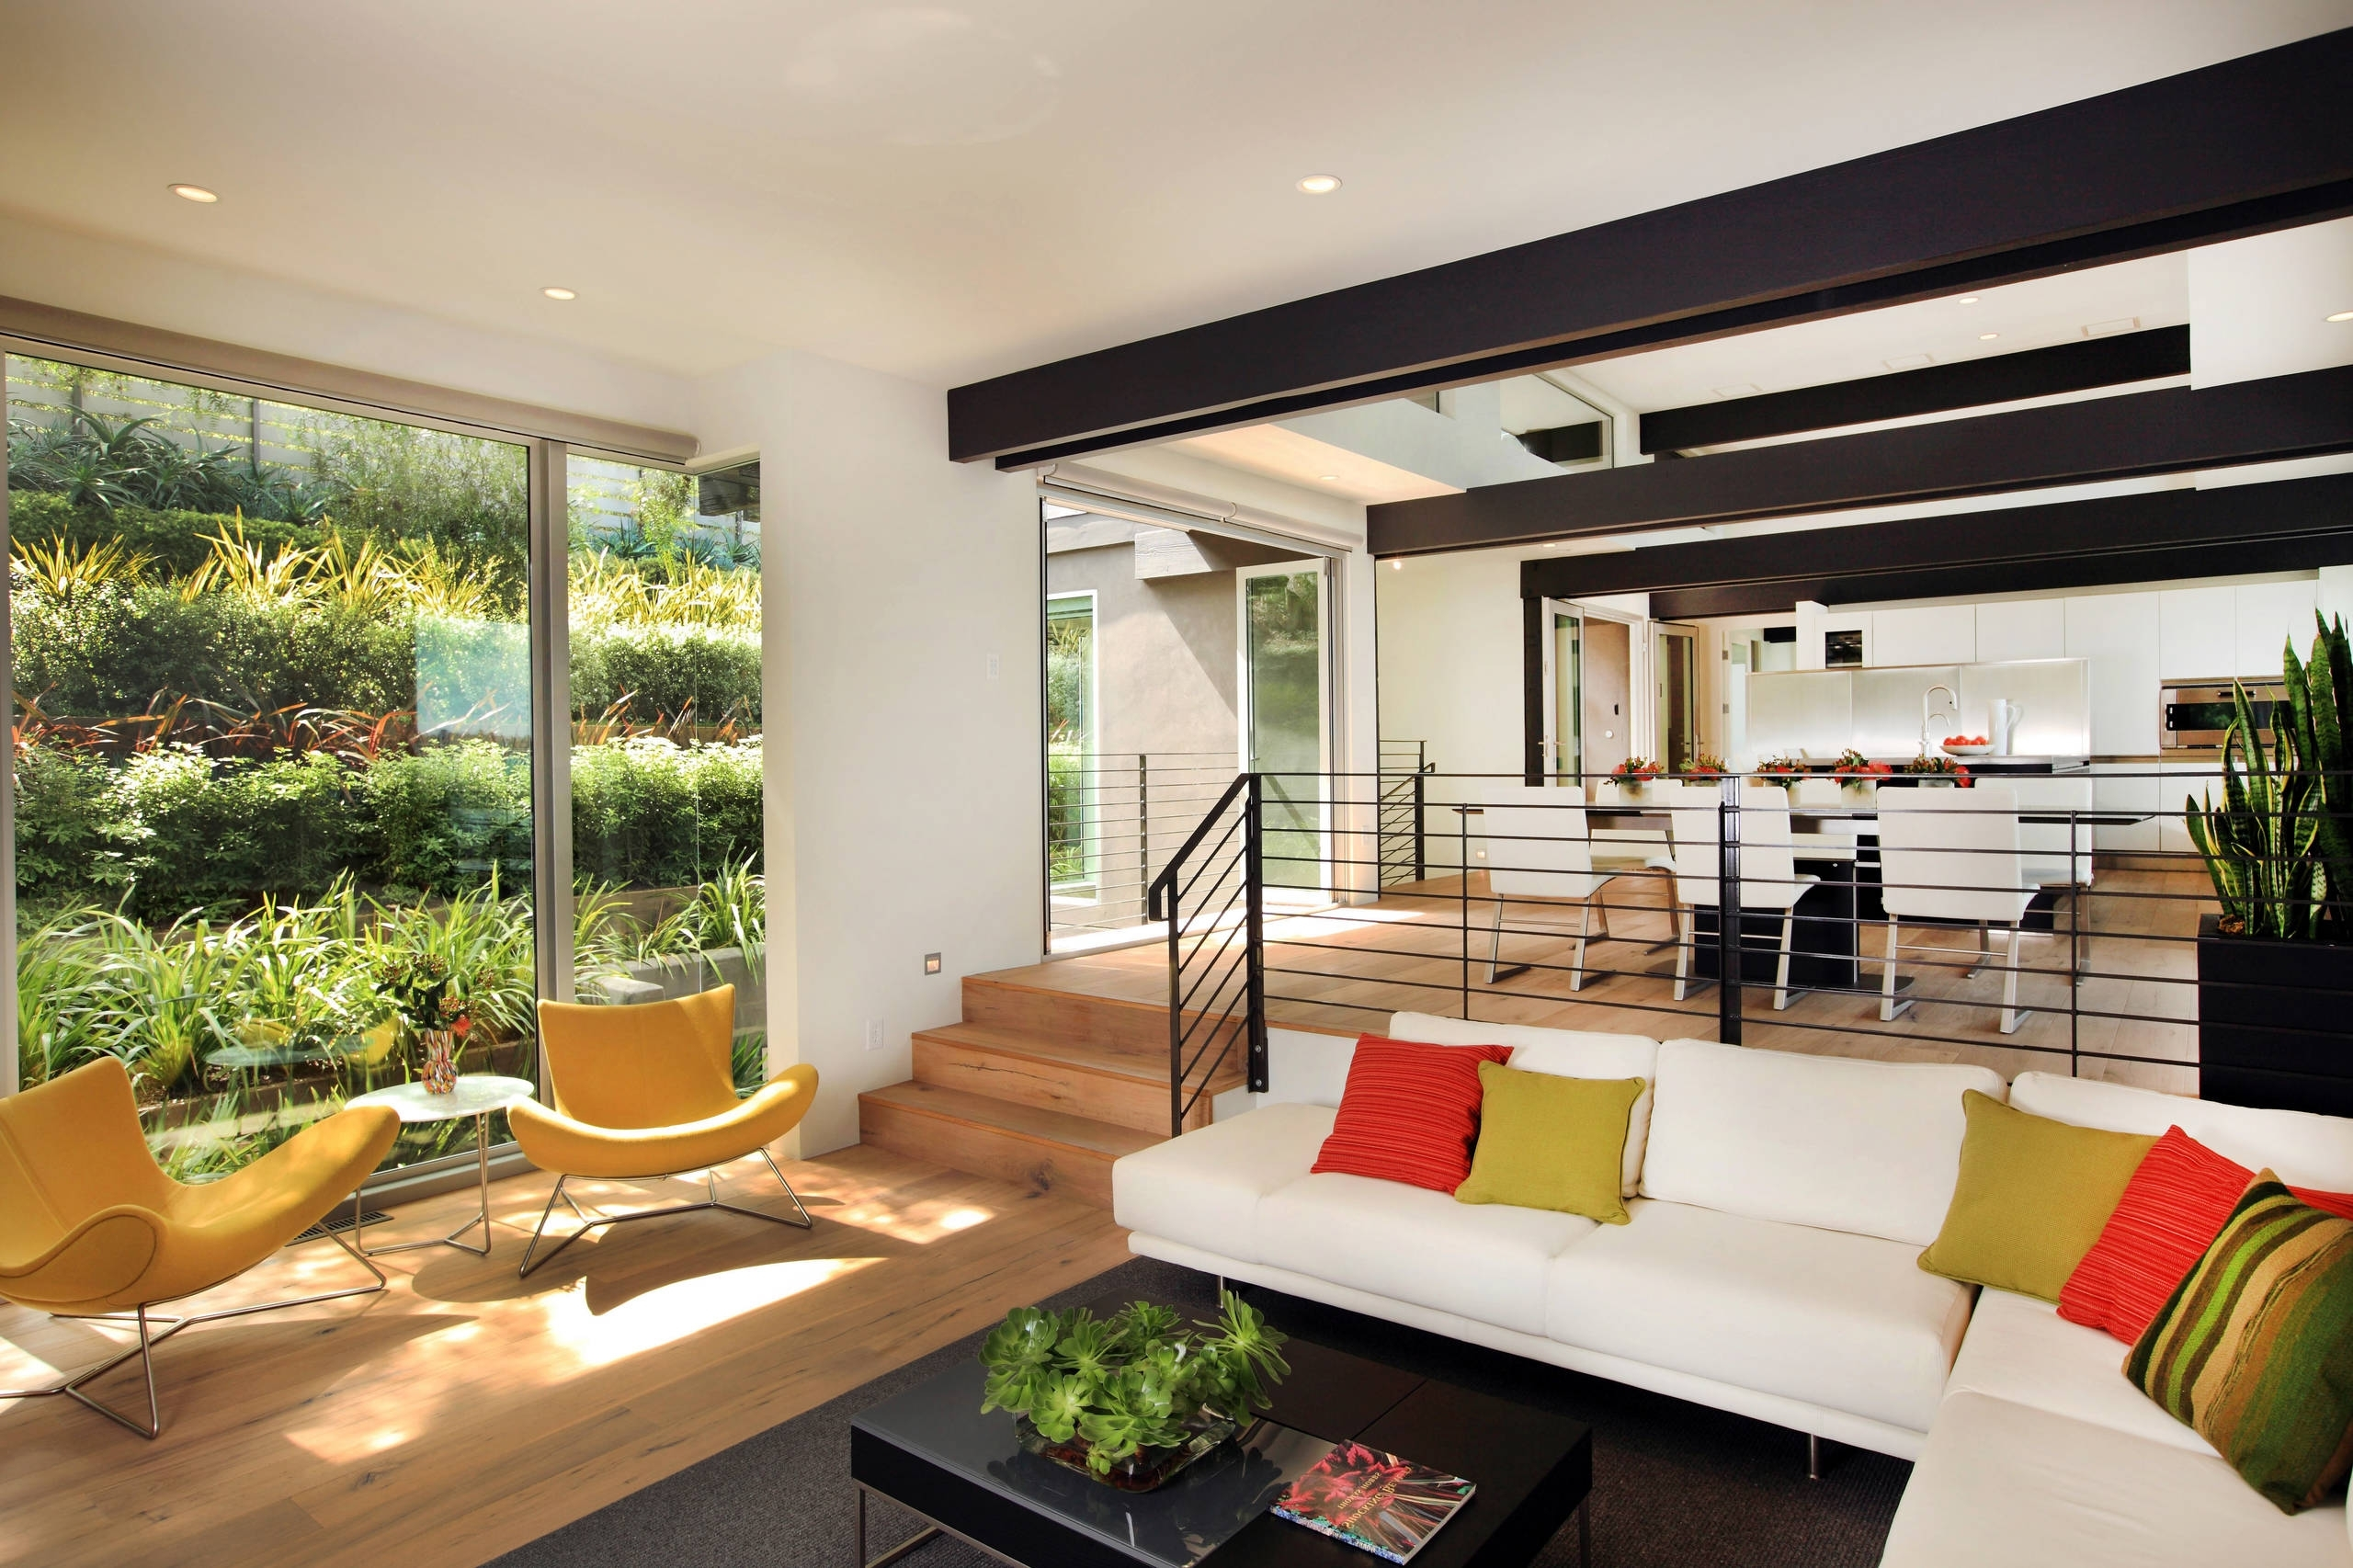 Sunken Living Room | Houzz Sunken Living Room